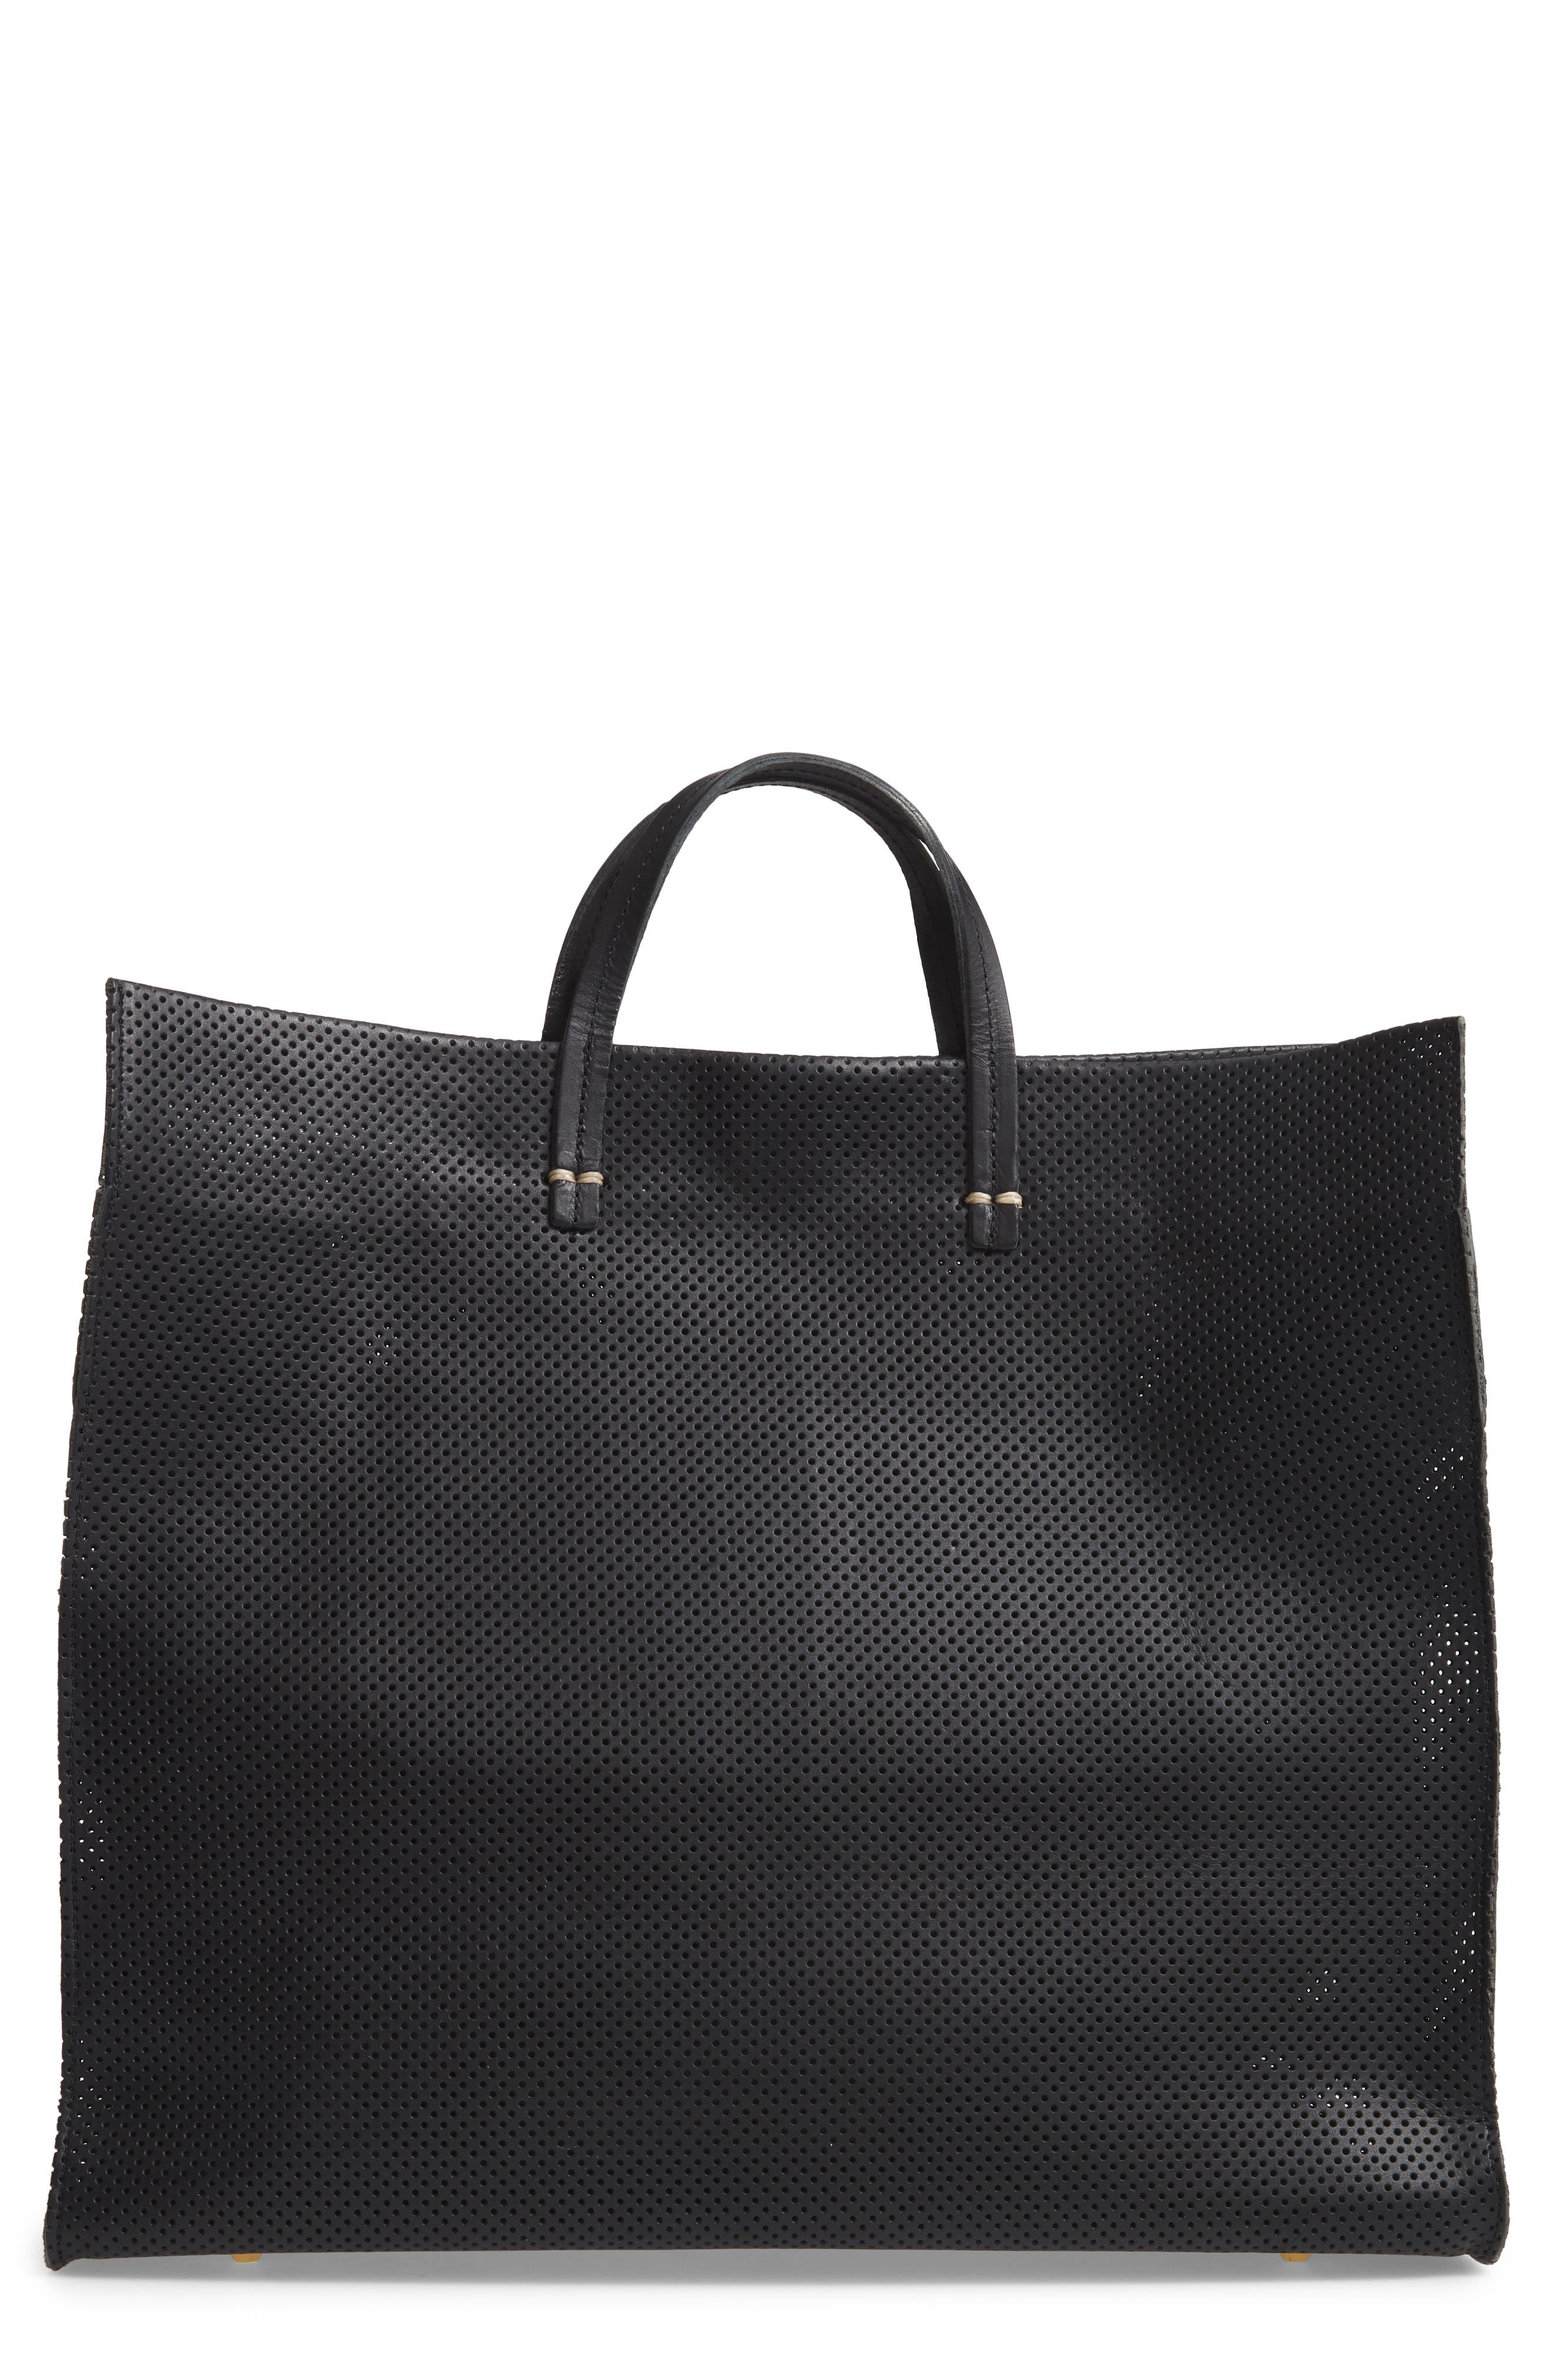 CLARE V Simple Perforated Leather Tote - Black in Black Perf